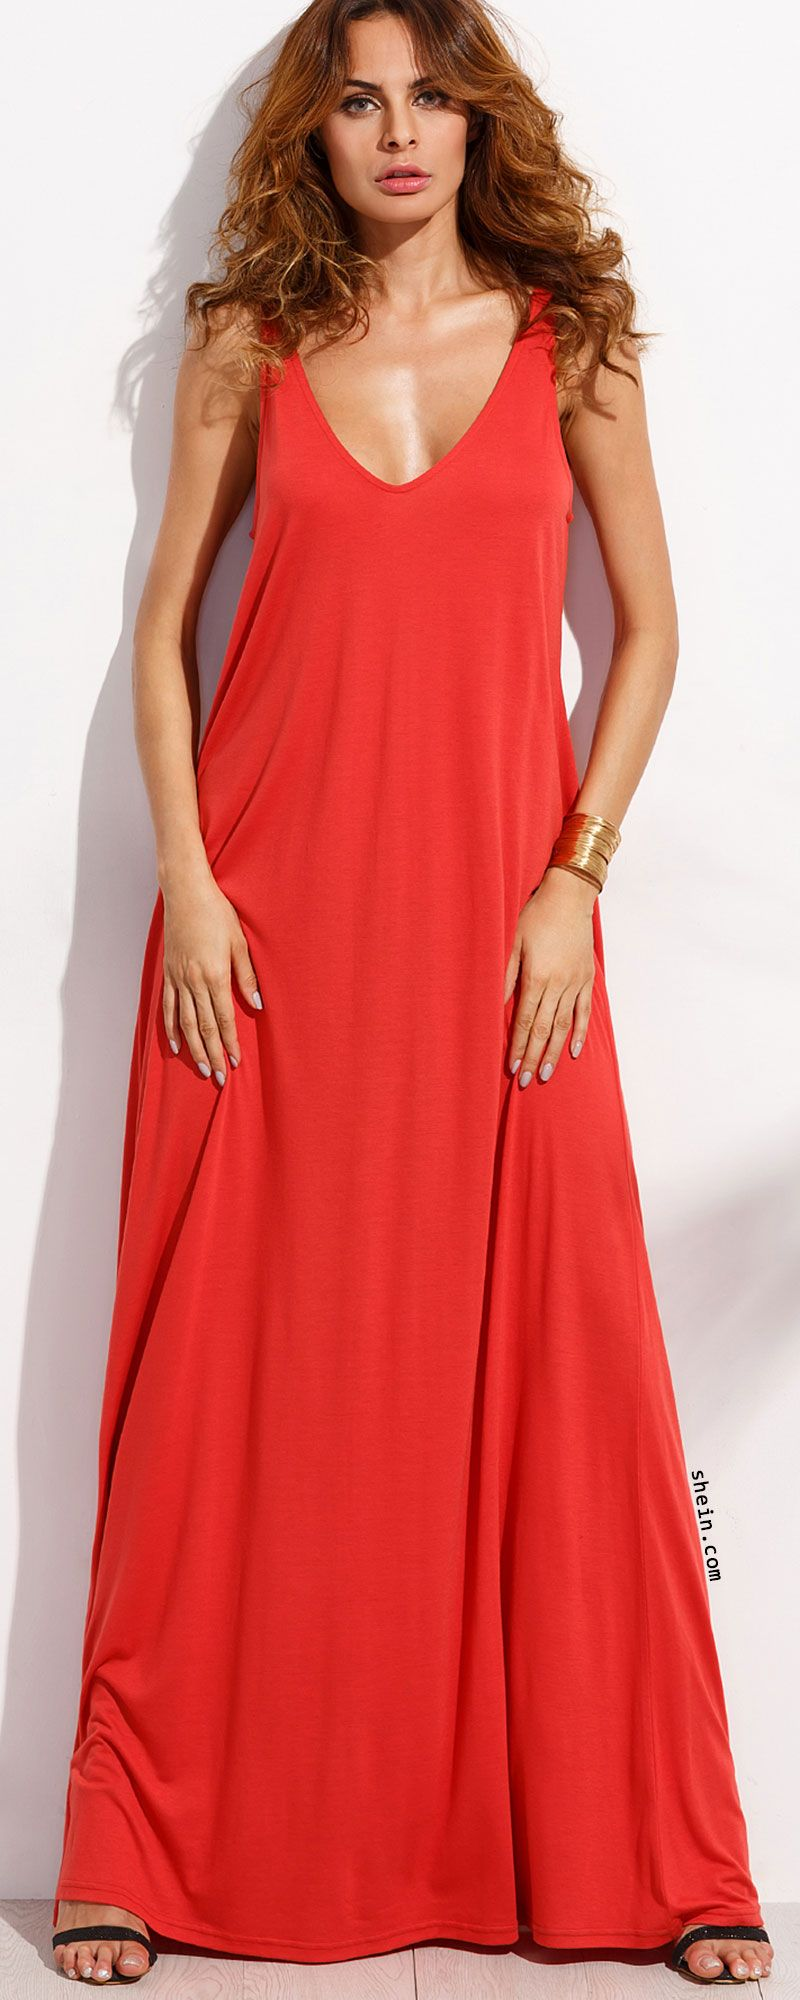 5d2429ccc3 Red Deep V Neck Sleeveless Knitted Shift Maxi Dress. Three colors available.